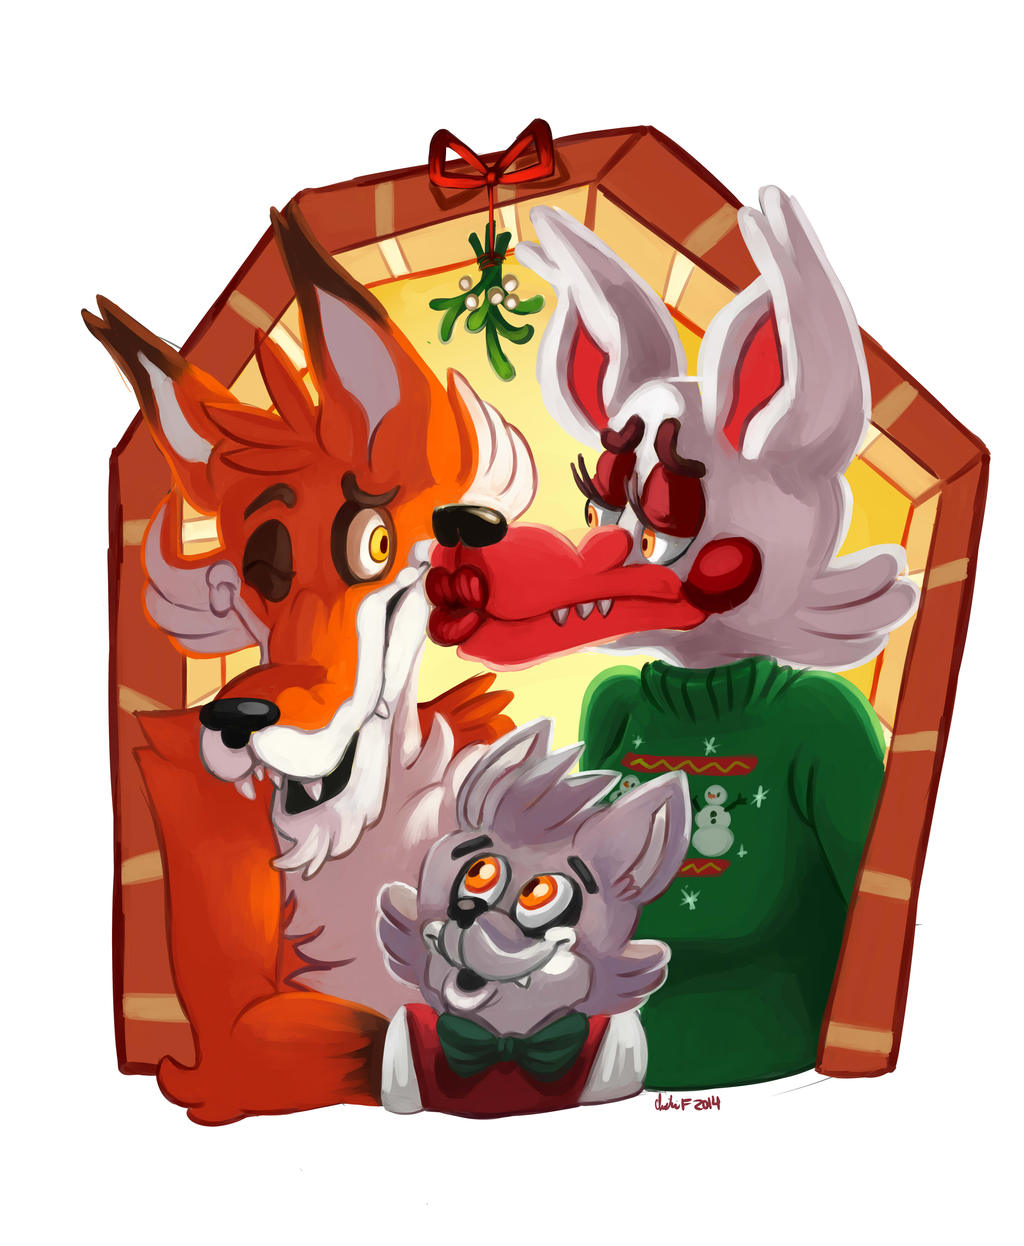 A Five Night's At Freddy's Christmas - Foxy and Mangle!